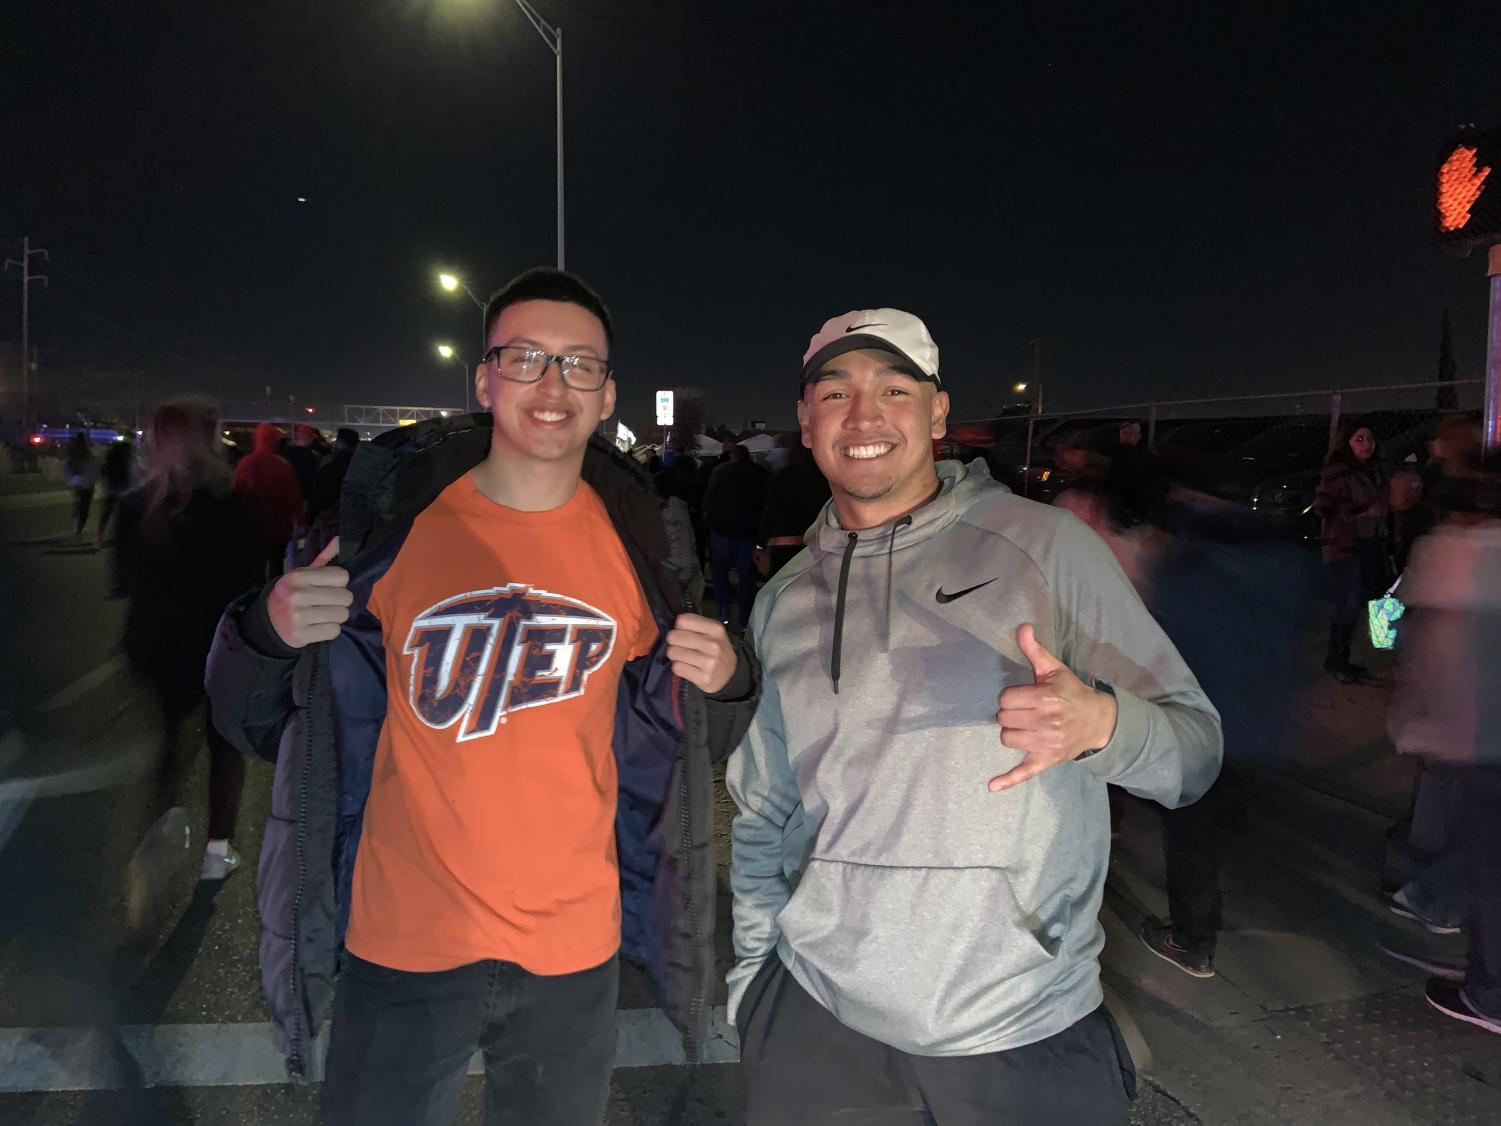 Alex Vasquez and Luis Estrada are UTEP students who made it in to the Trump Rally. They were escorted out